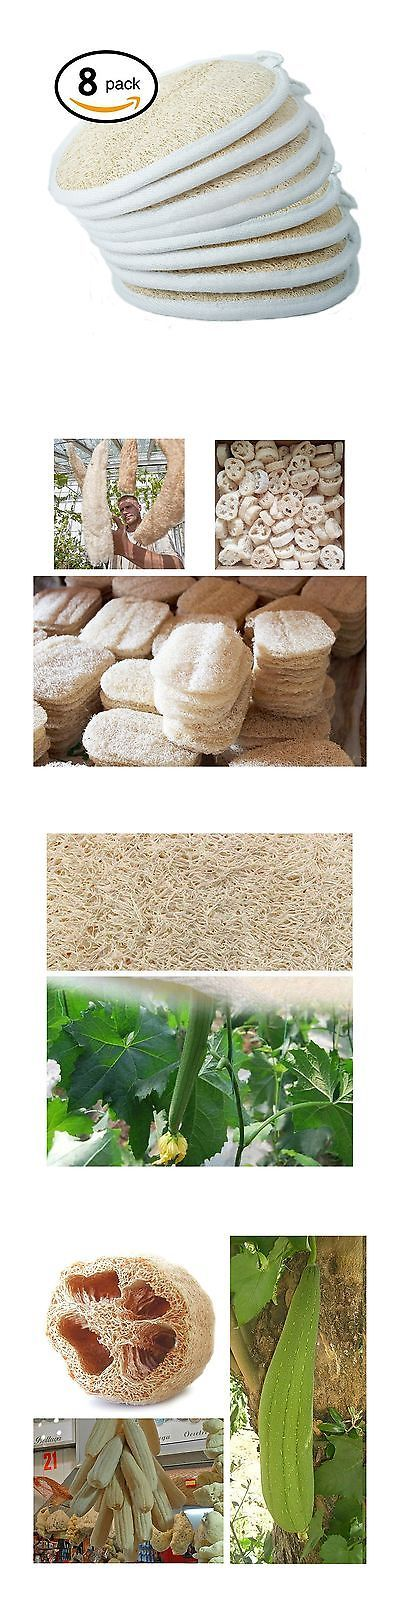 Bath Brushes and Sponges: Exfoliating Loofah Sponge Pads (Pack Of 8) - Large 4X6 - 100% Natural Luffa A... -> BUY IT NOW ONLY: $32.4 on eBay!